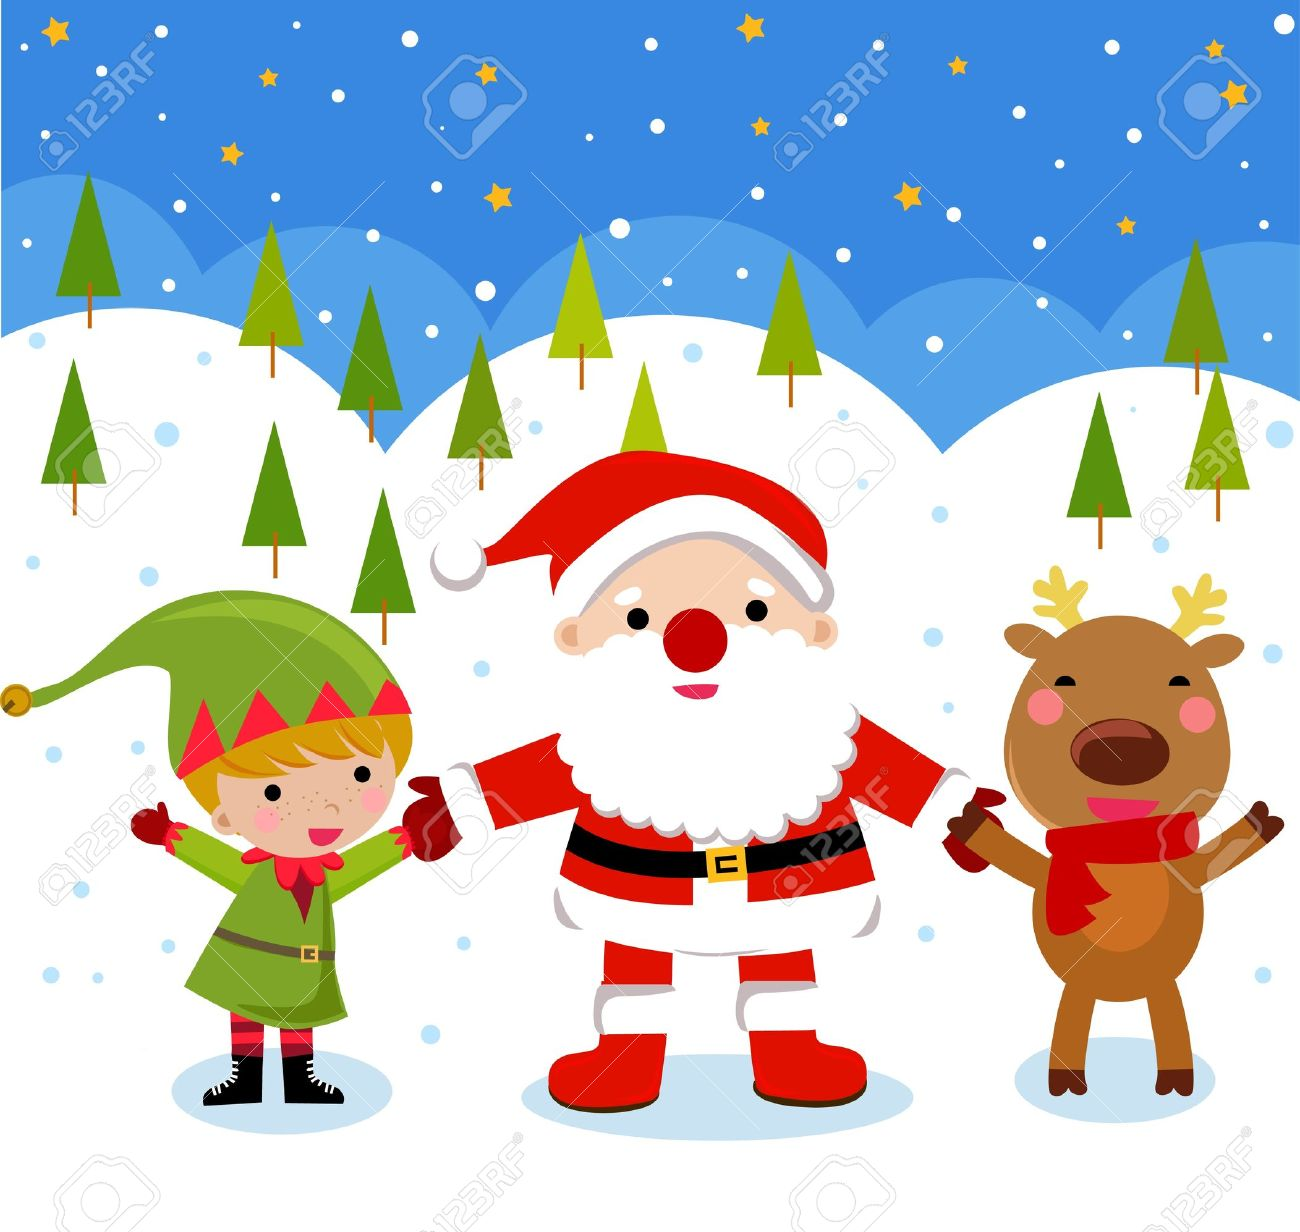 Image result for Santa and reindeer and elves